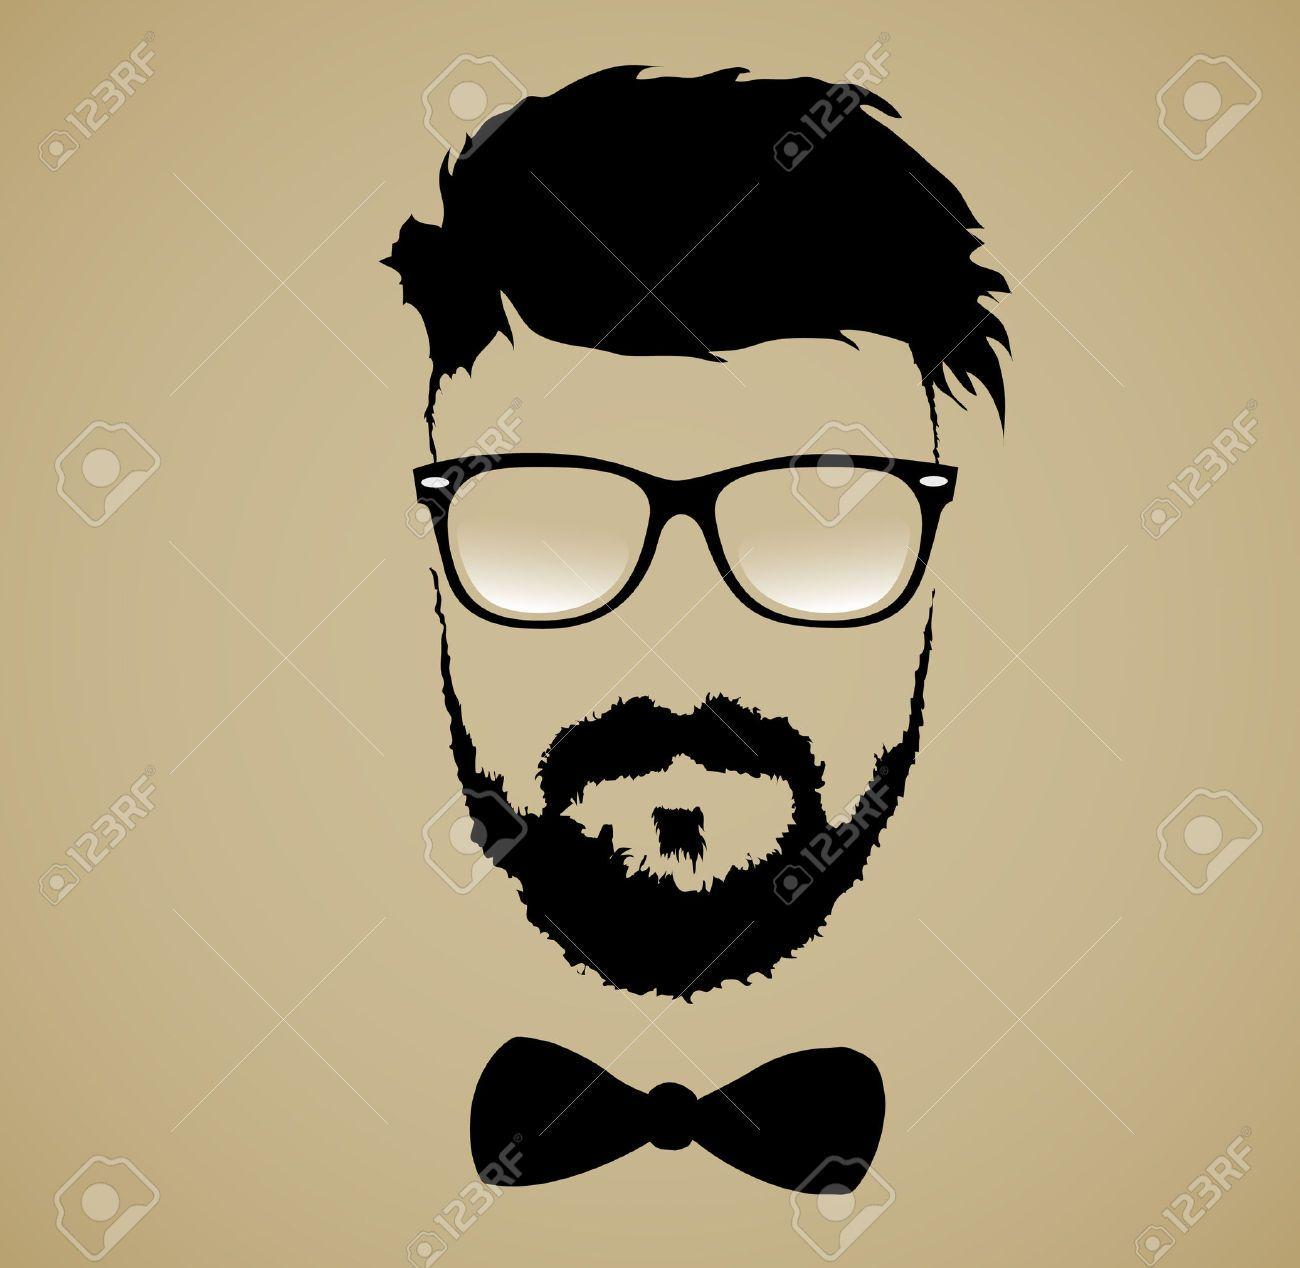 jpg Stock vector art silhouette. Beard clipart glass